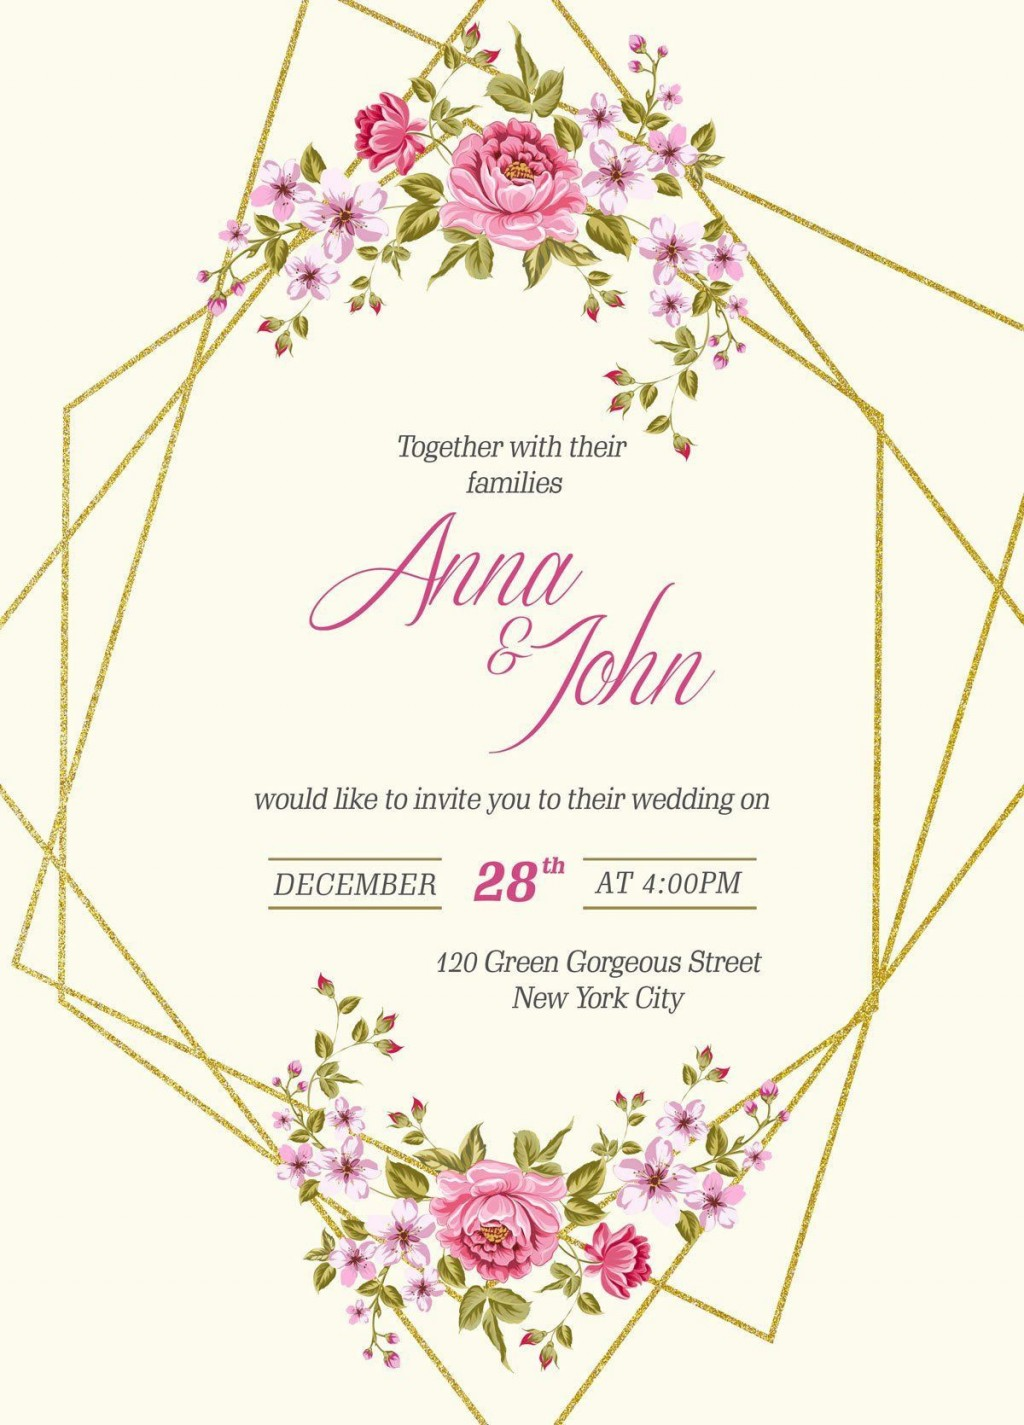 005 Wondrou Download Free Wedding Invitation Card Template Concept  Format Indian-traditional-wedding-invitation-card-psd-template-free-downloadLarge